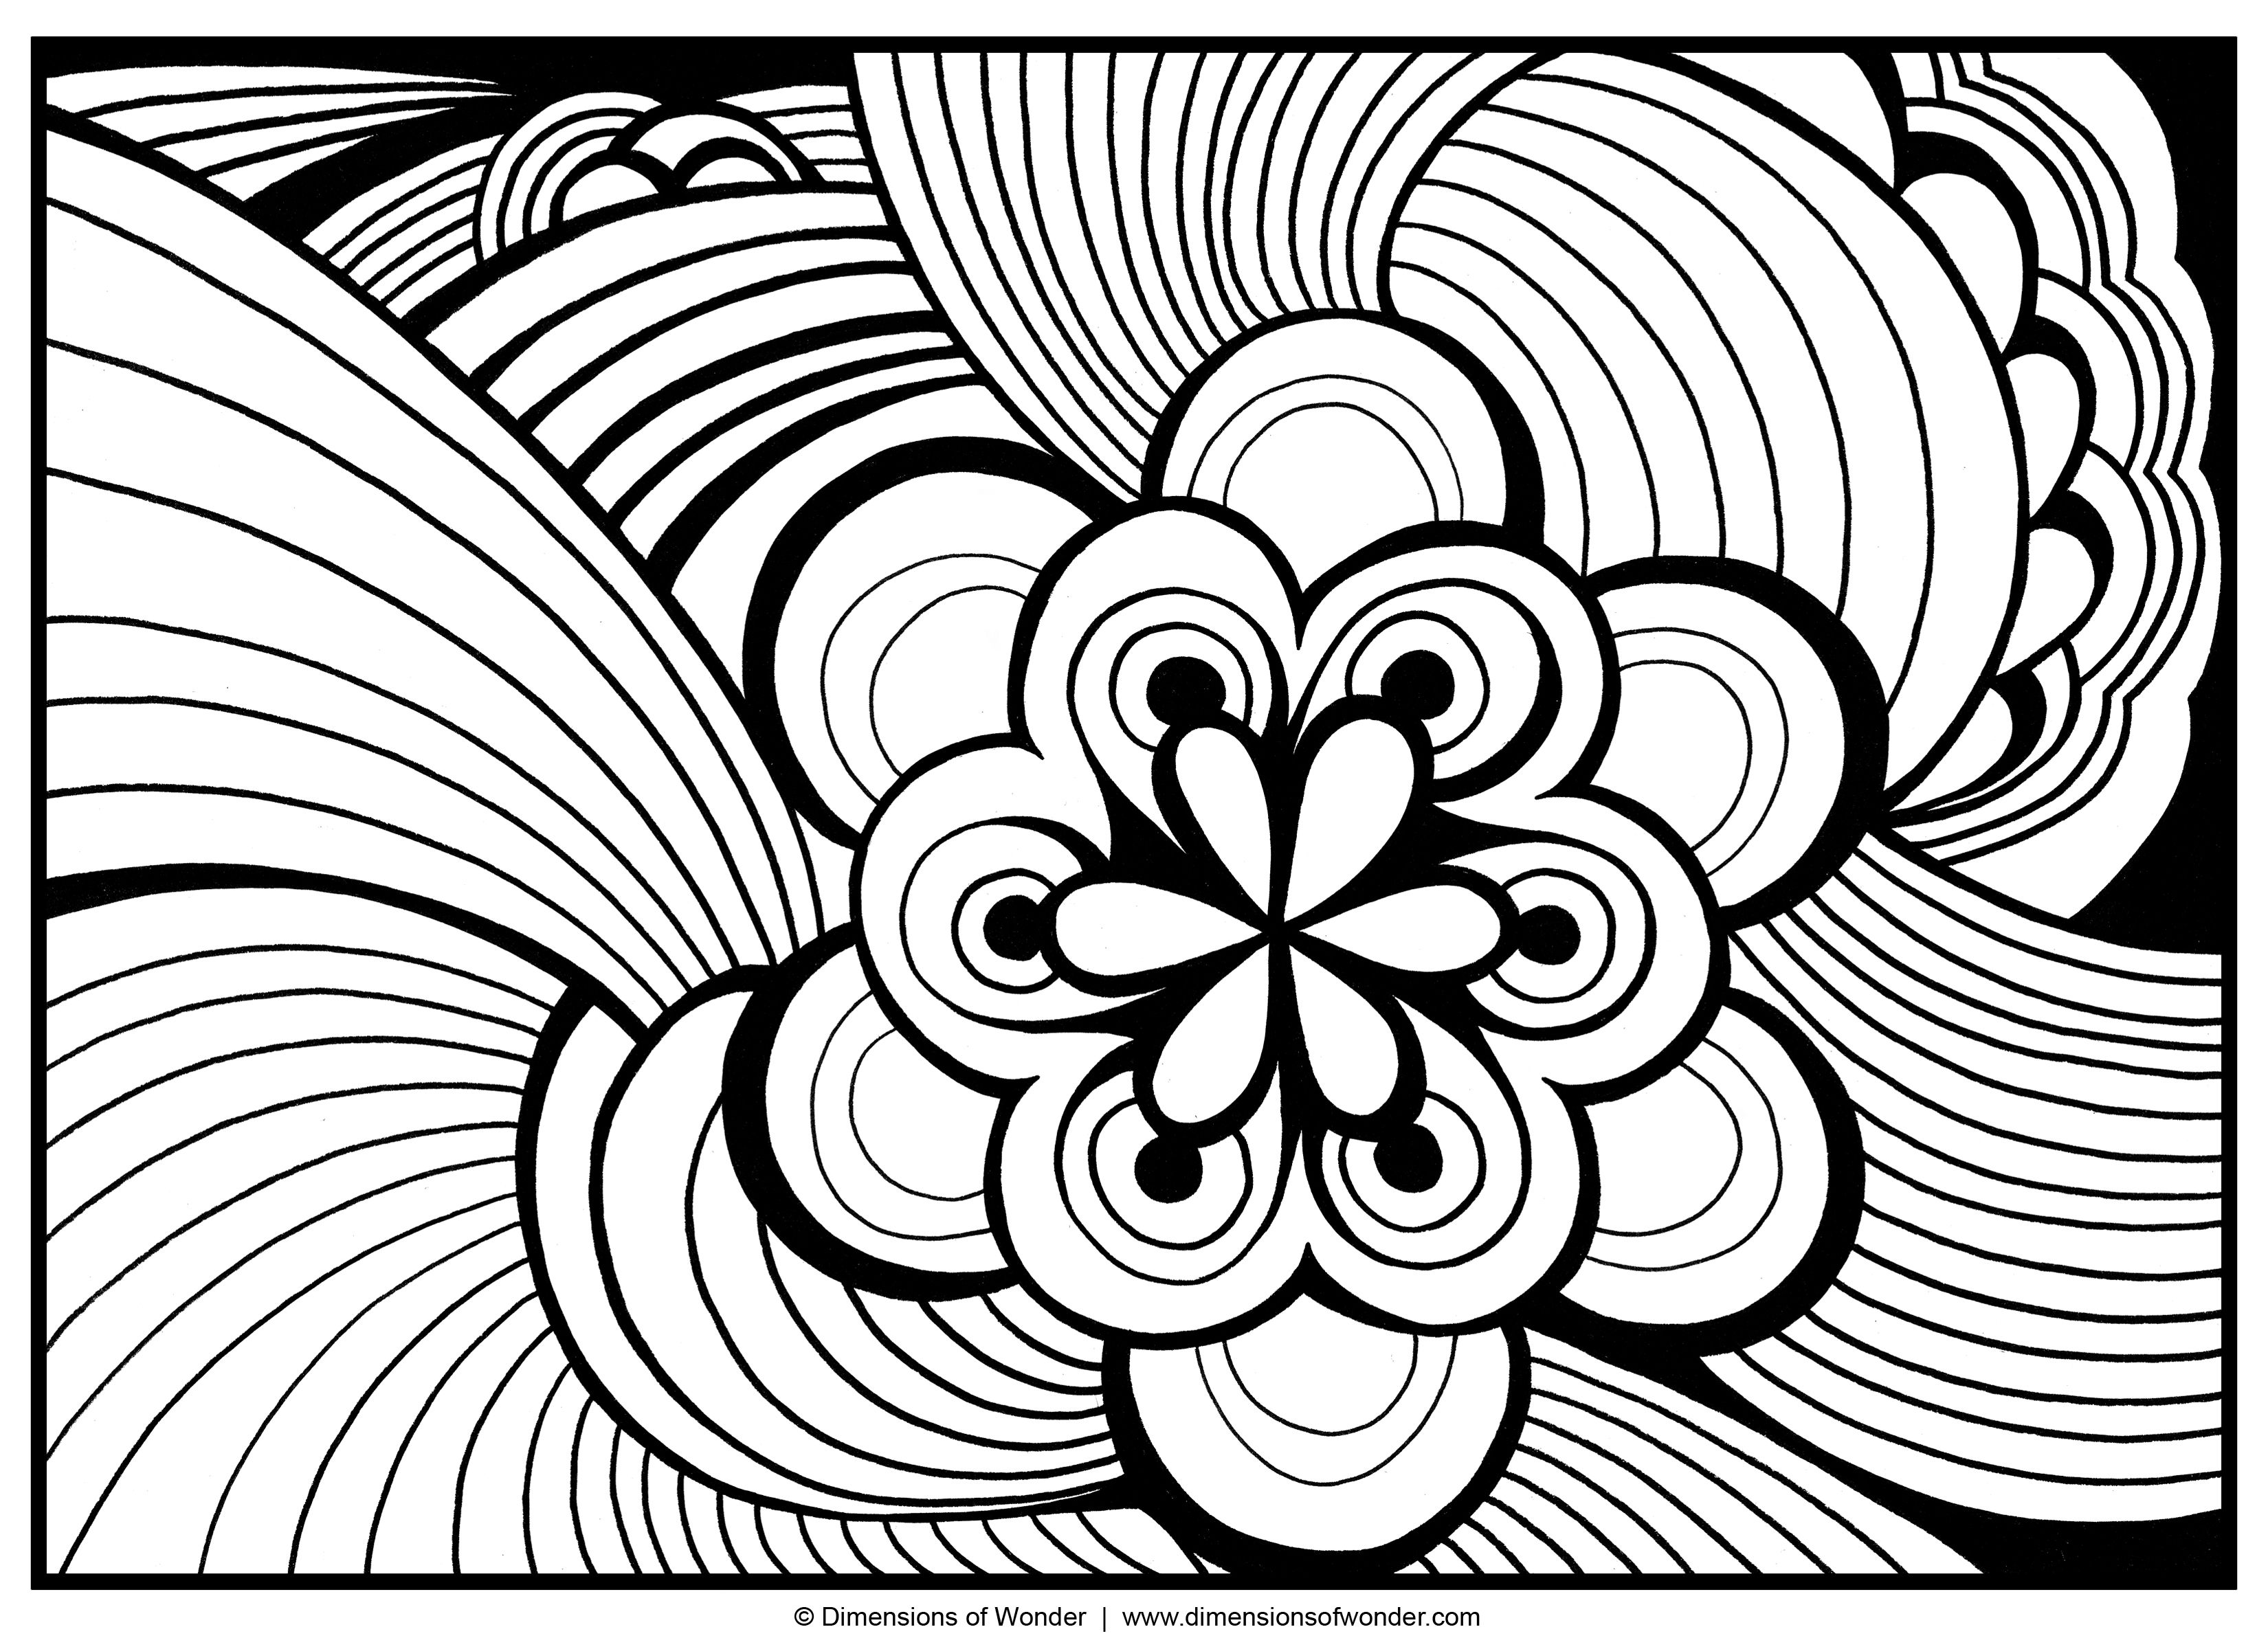 abstract coloring pages free large images - Cloring Sheets